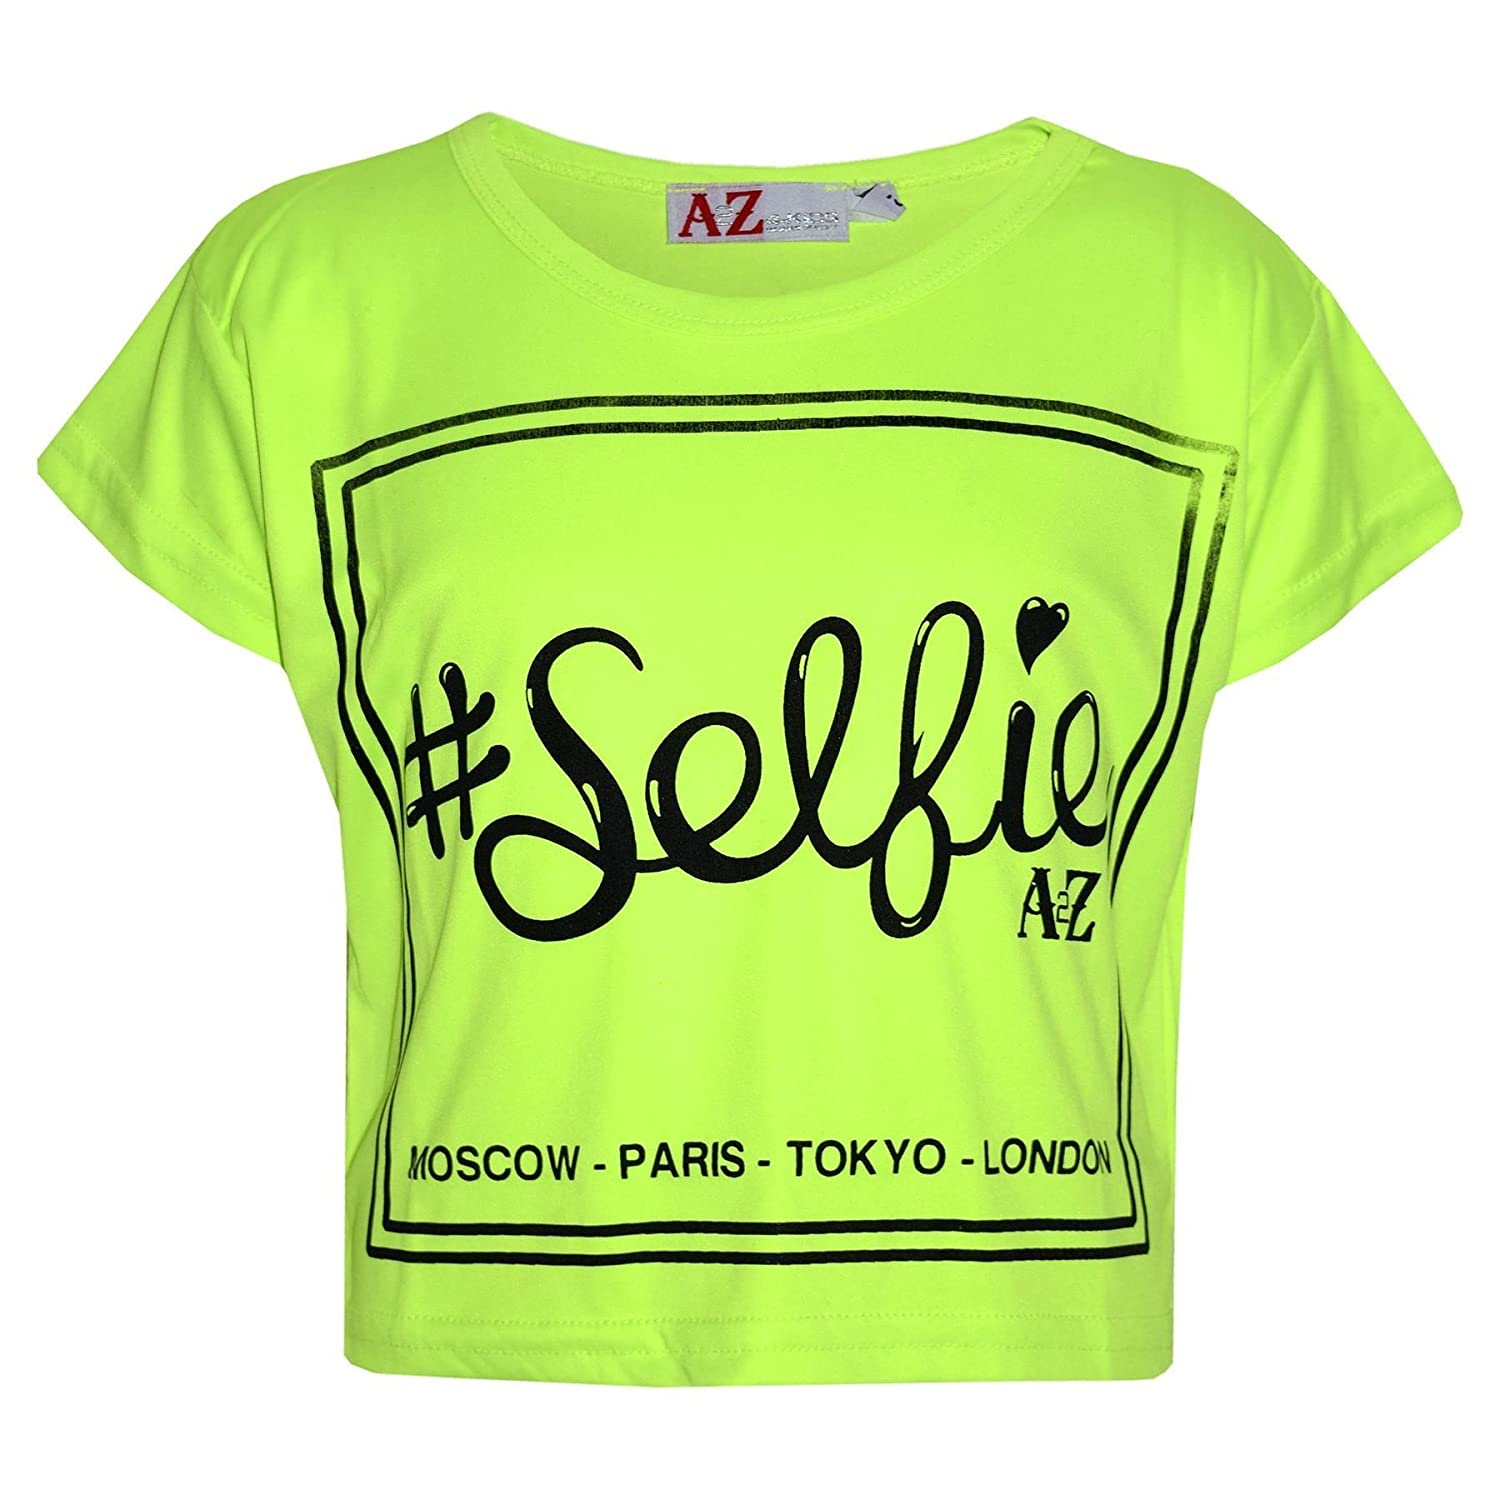 A2Z 4 Kids® Girls Top Kids #Selfie Print Stylish Fahsion Trendy T Shirt Crop Top New Age 5 6 7 8 9 10 11 12 13 Years